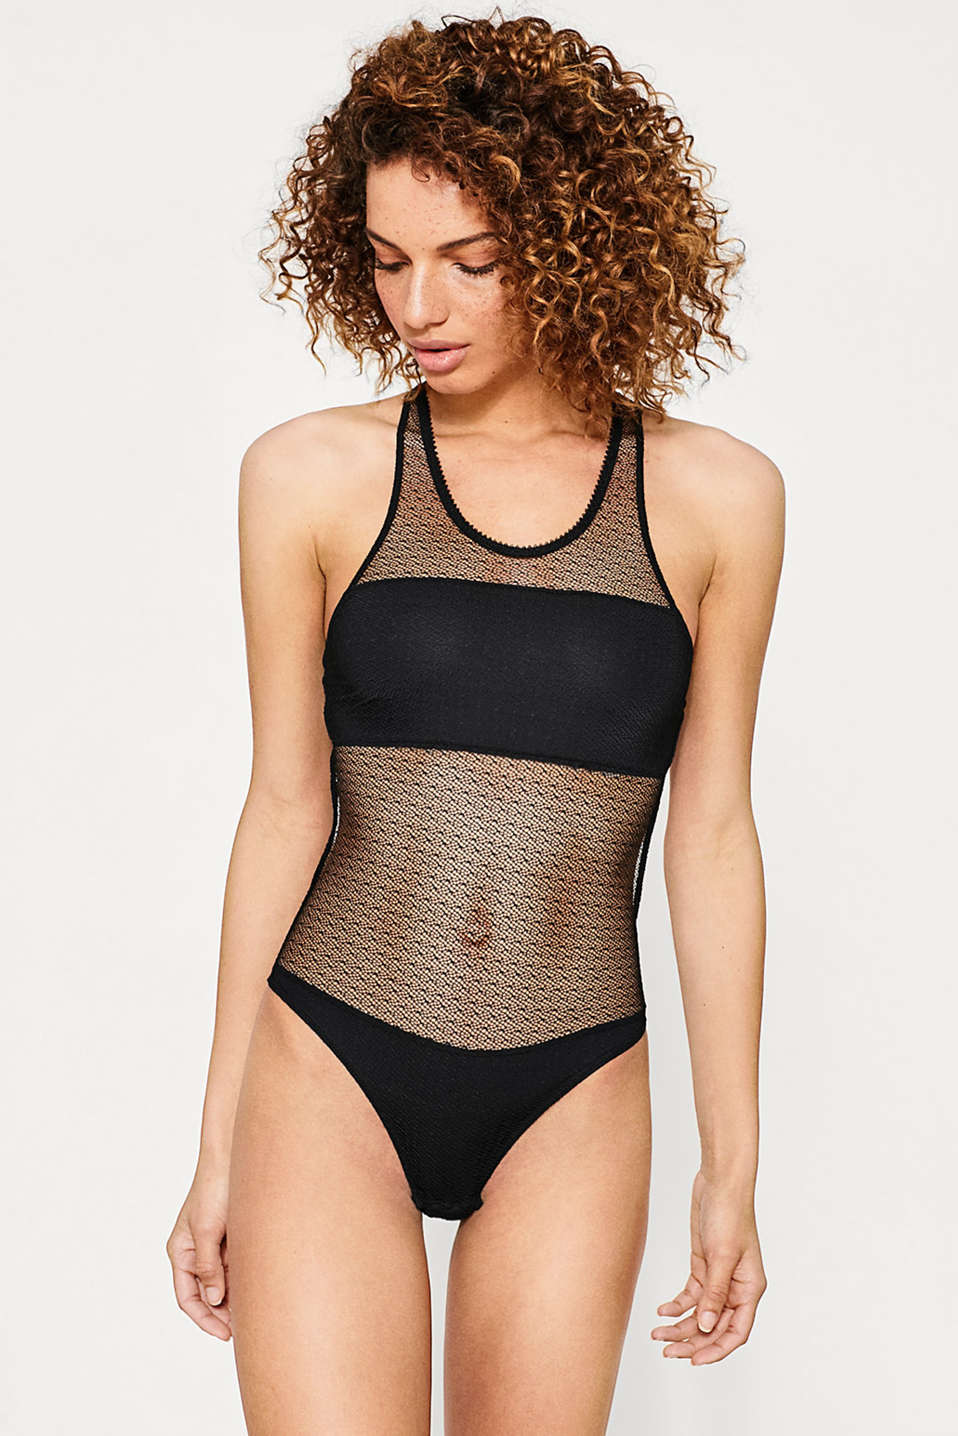 edc - Soft body in graphic lace